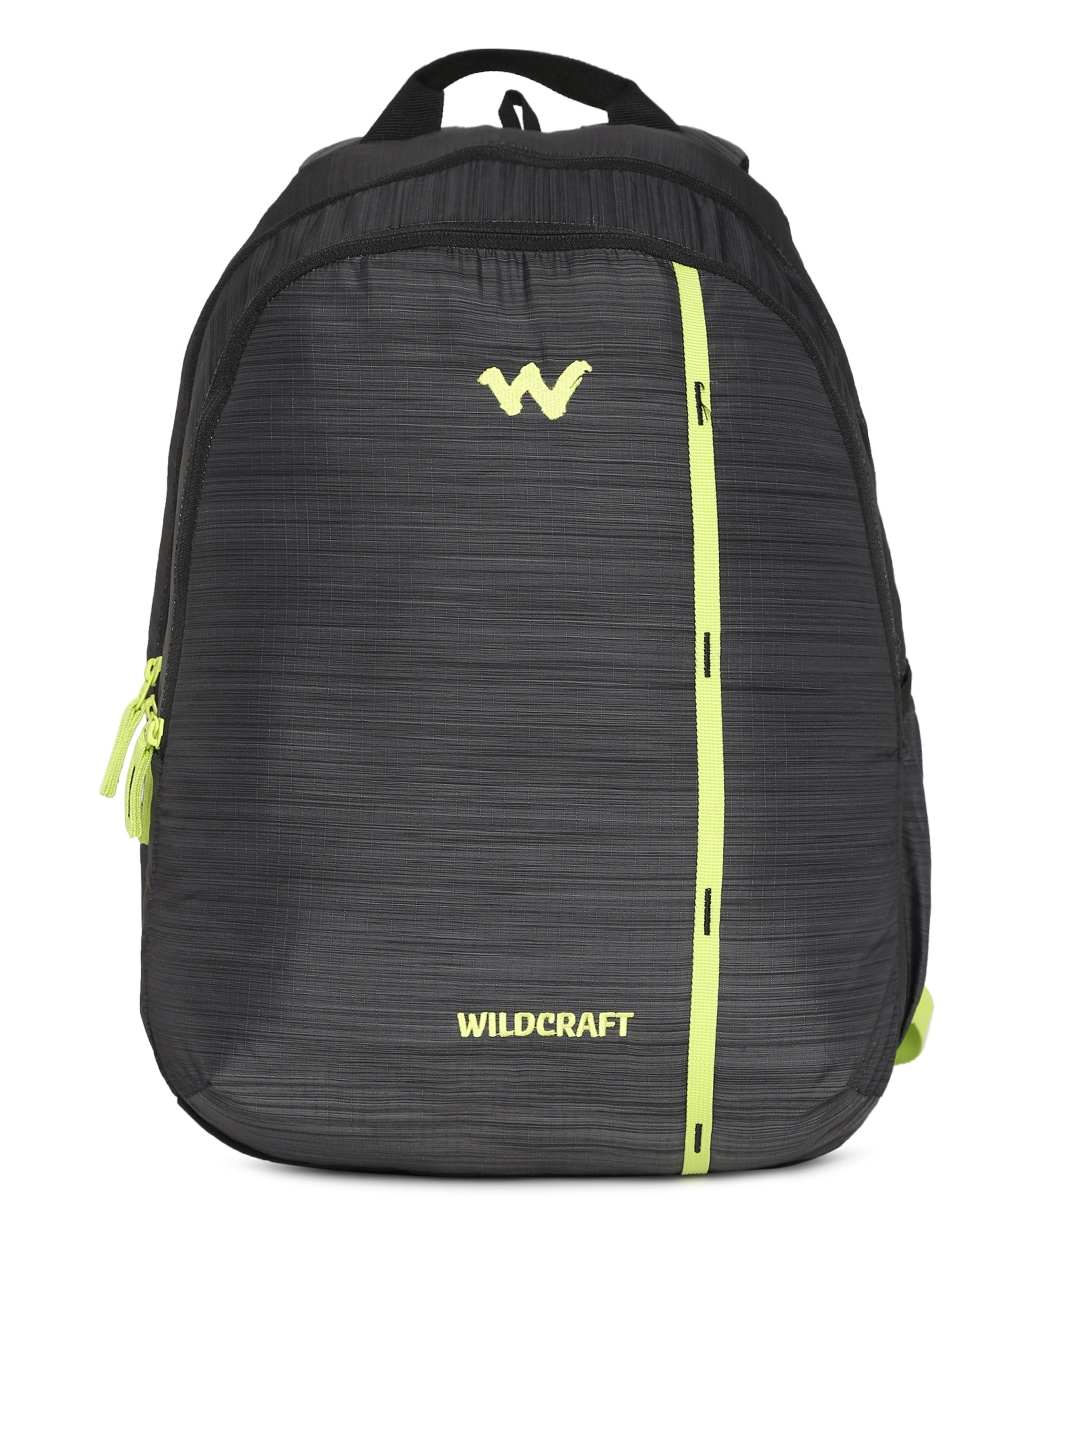 6cf4b30d42 Wildcraft Backpacks - Buy Wildcraft Backpack Online